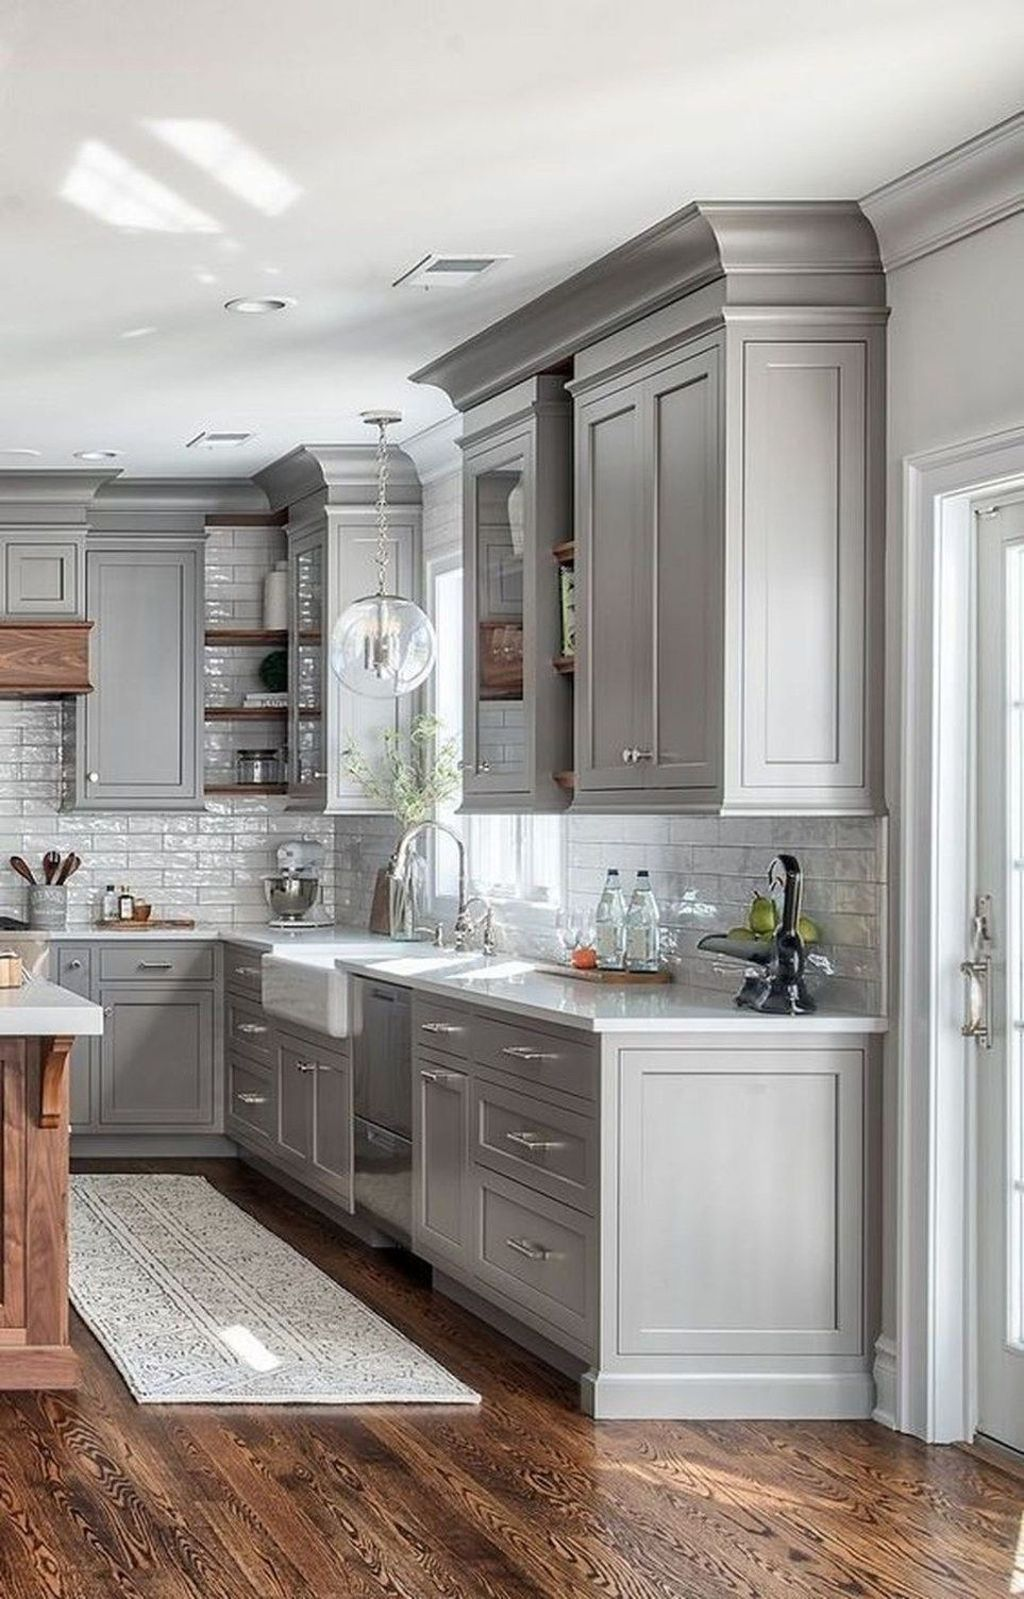 If You Are Thinking Of Redesigning Your Current Kitchen Or Are Putting A New Kitchen In A Kitchen Renovation Cost Kitchen Cabinet Styles Grey Kitchen Designs New kitchen design trends